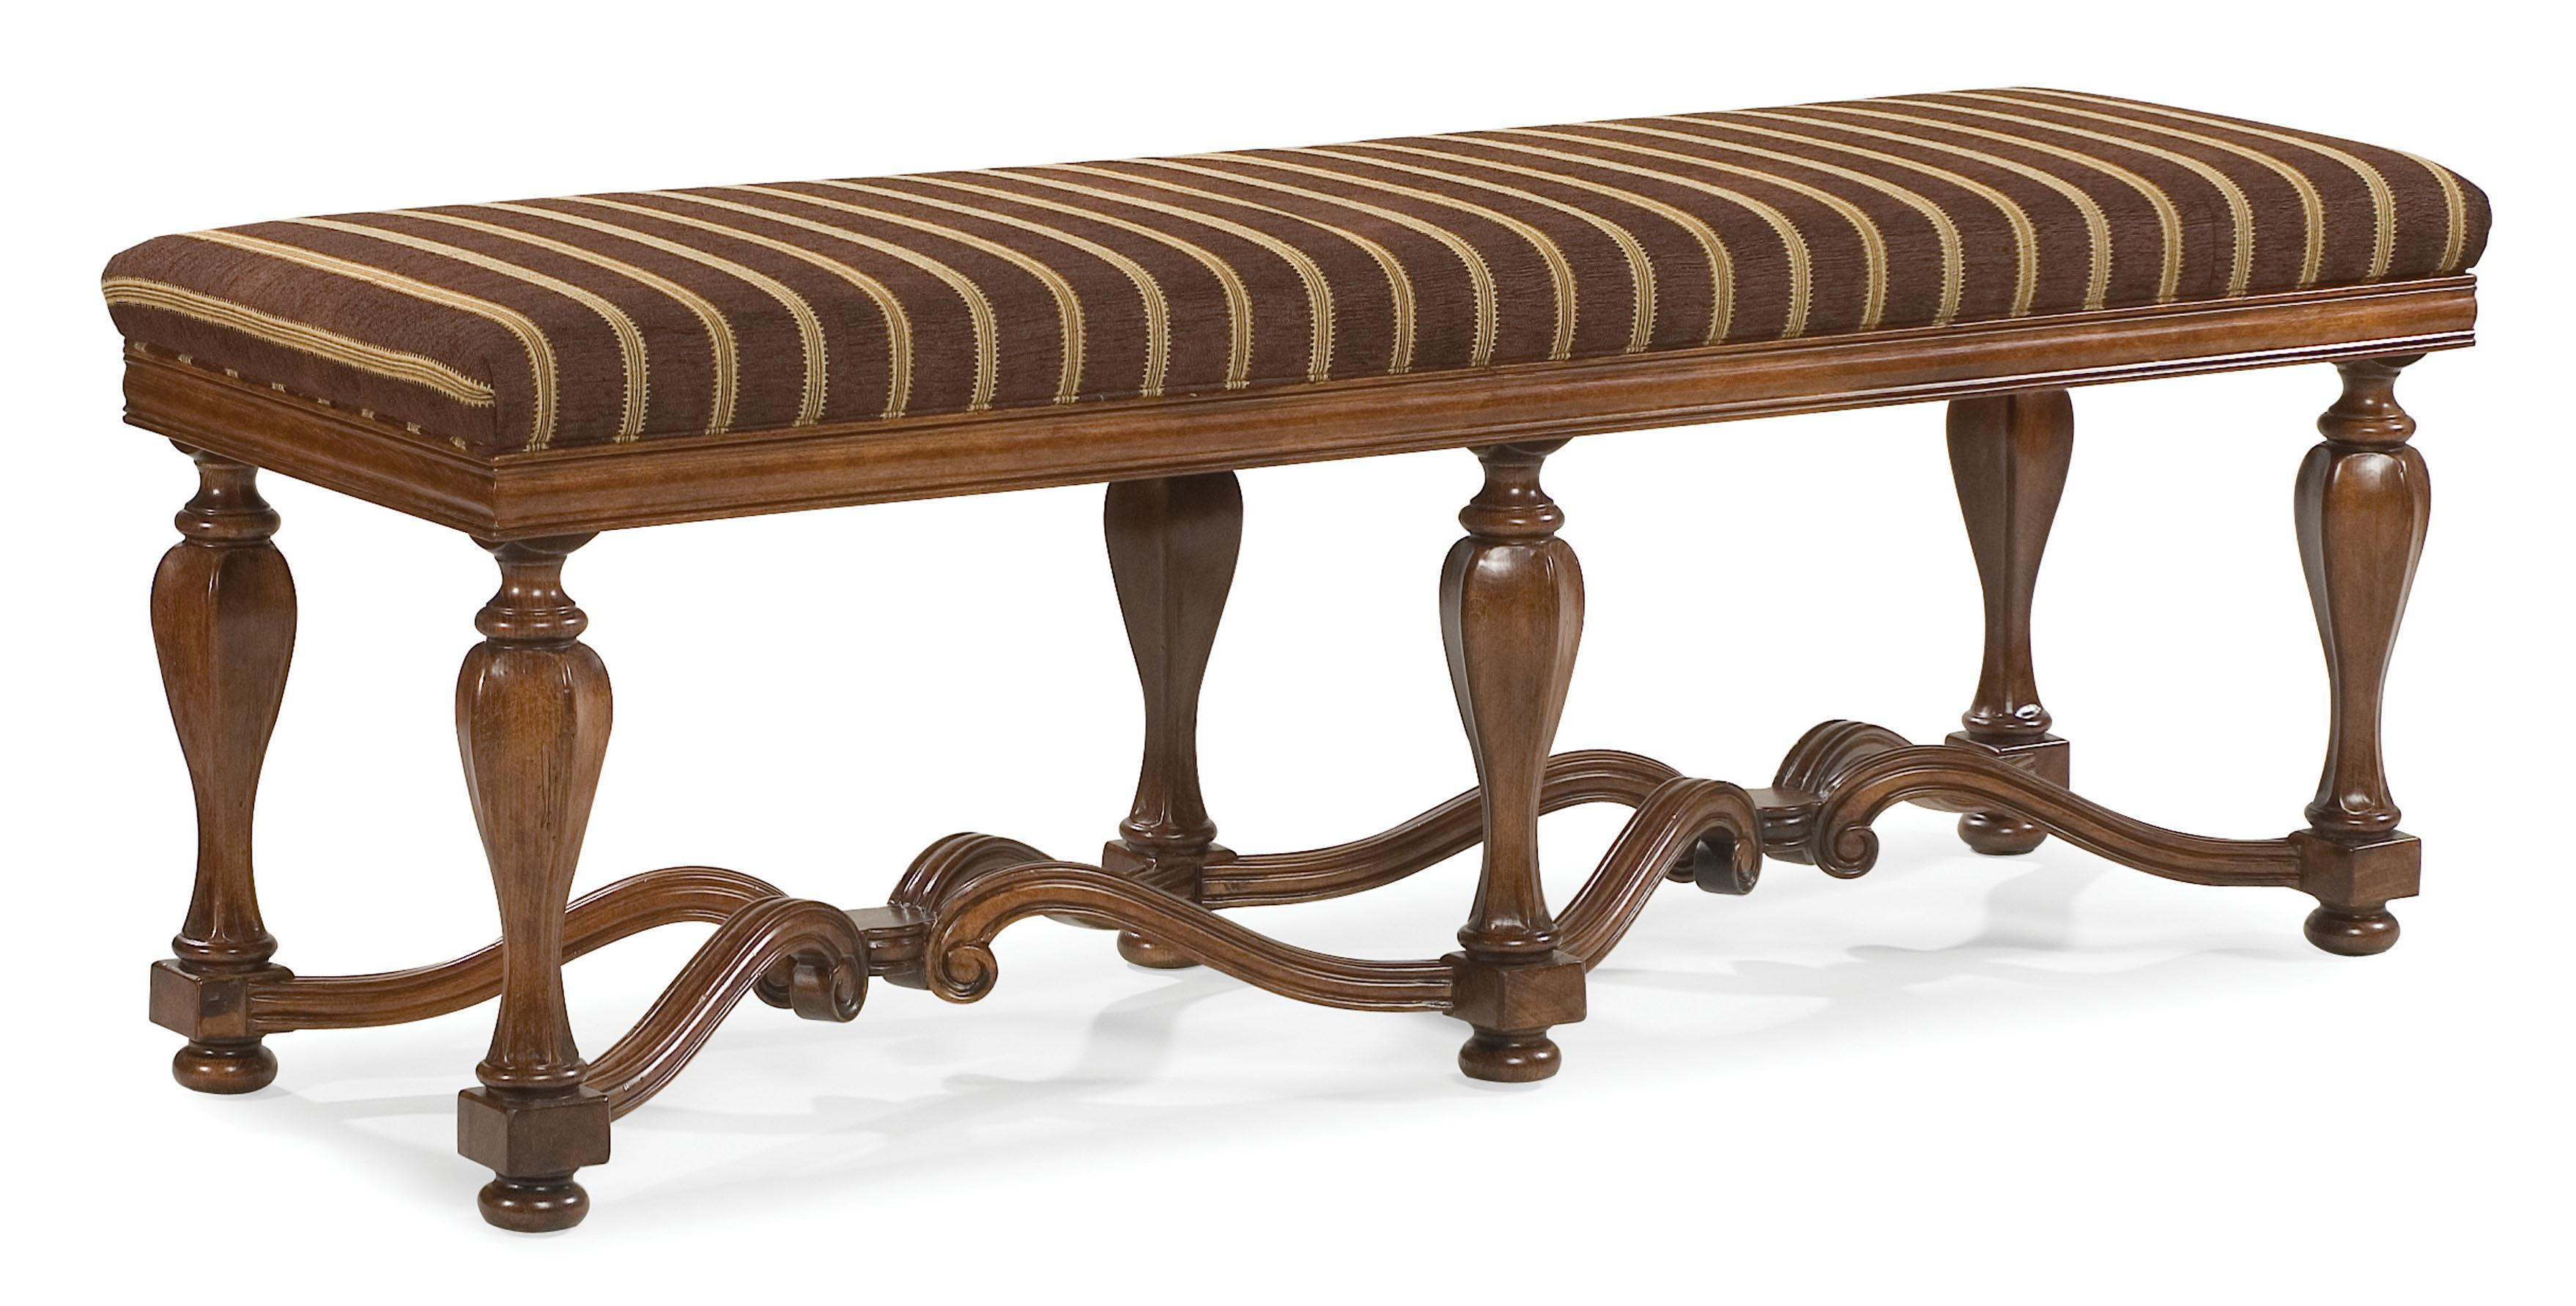 Fairfield Benches Bench - Item Number: 1670-10